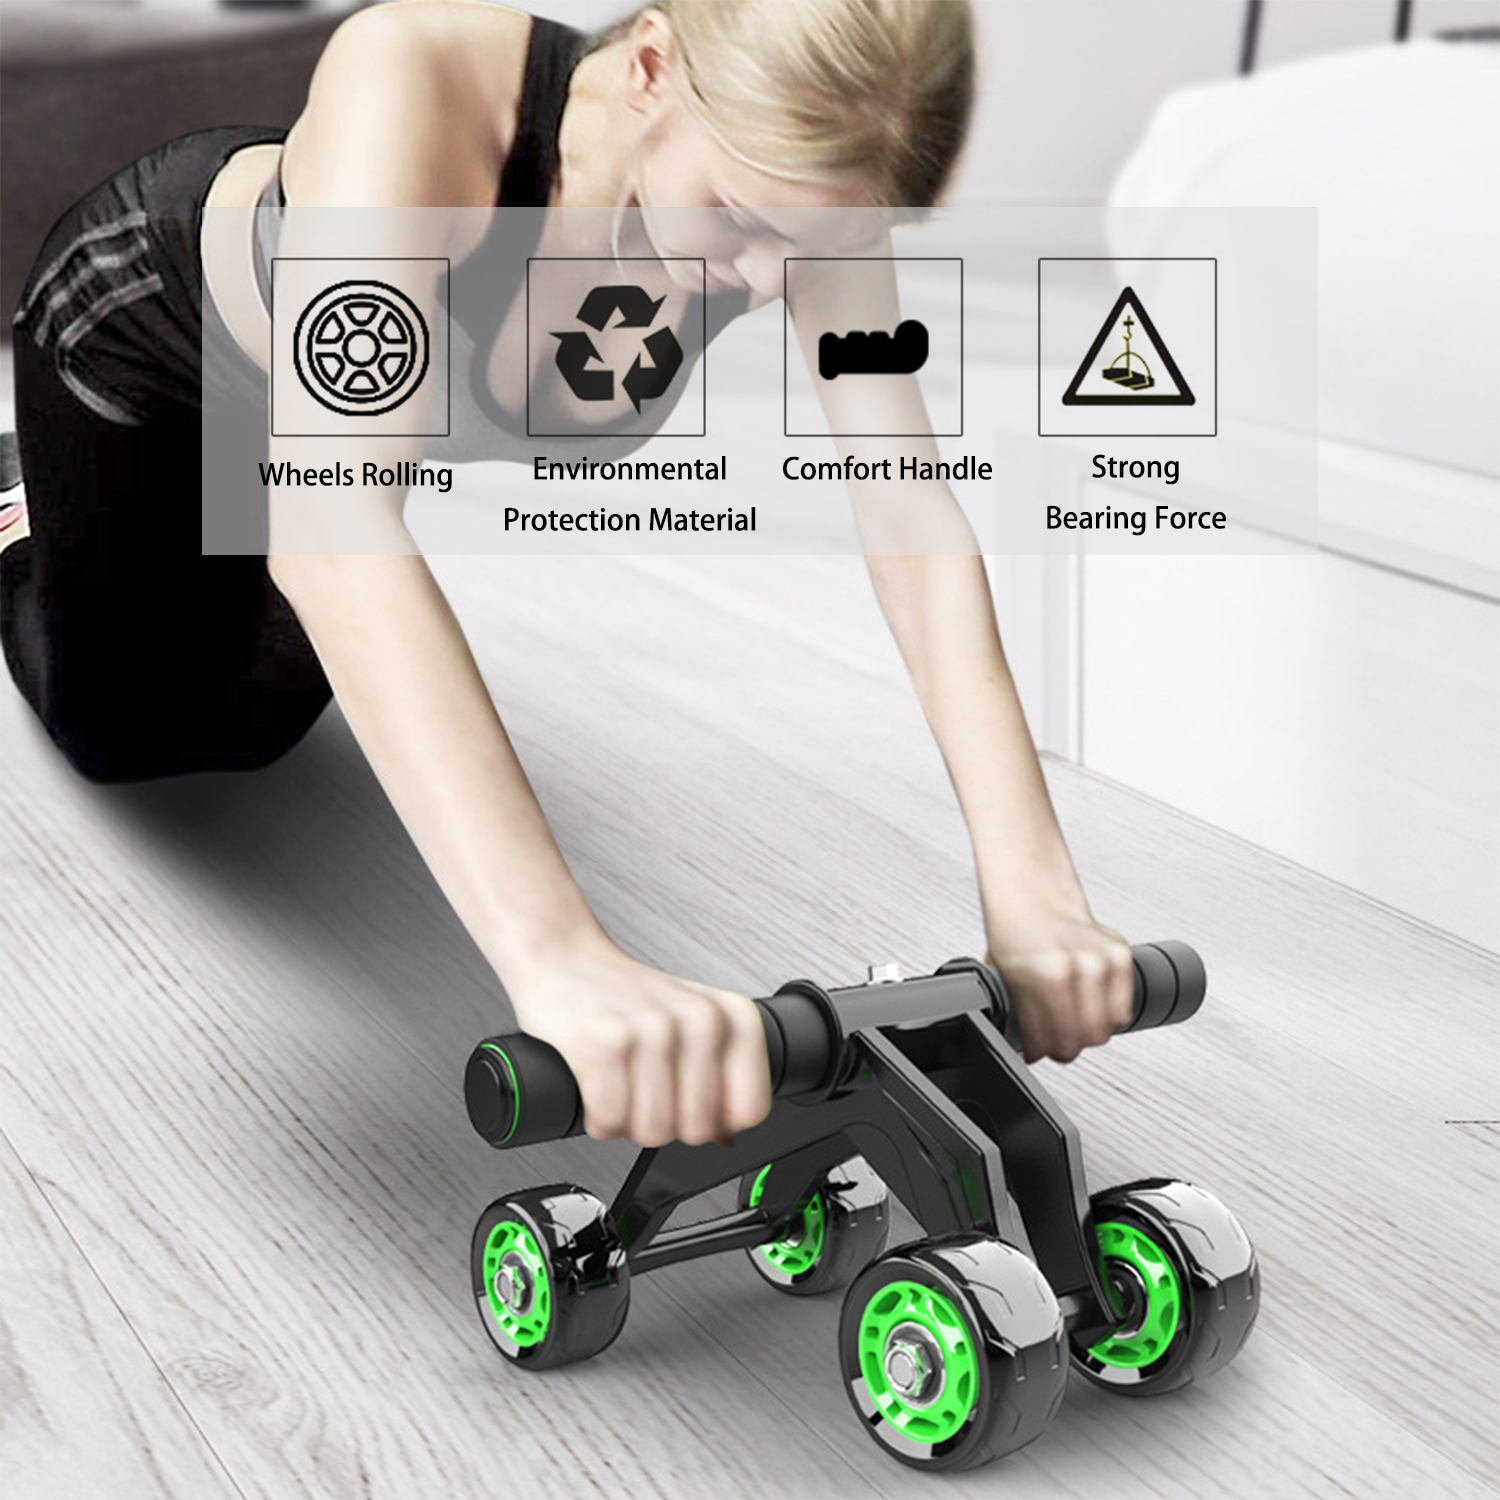 Abdominal Wheel with Knee Pad and Resistance Band, 4 Wheels Ad Roller Set for Abdominal Training Home Workout Exercise